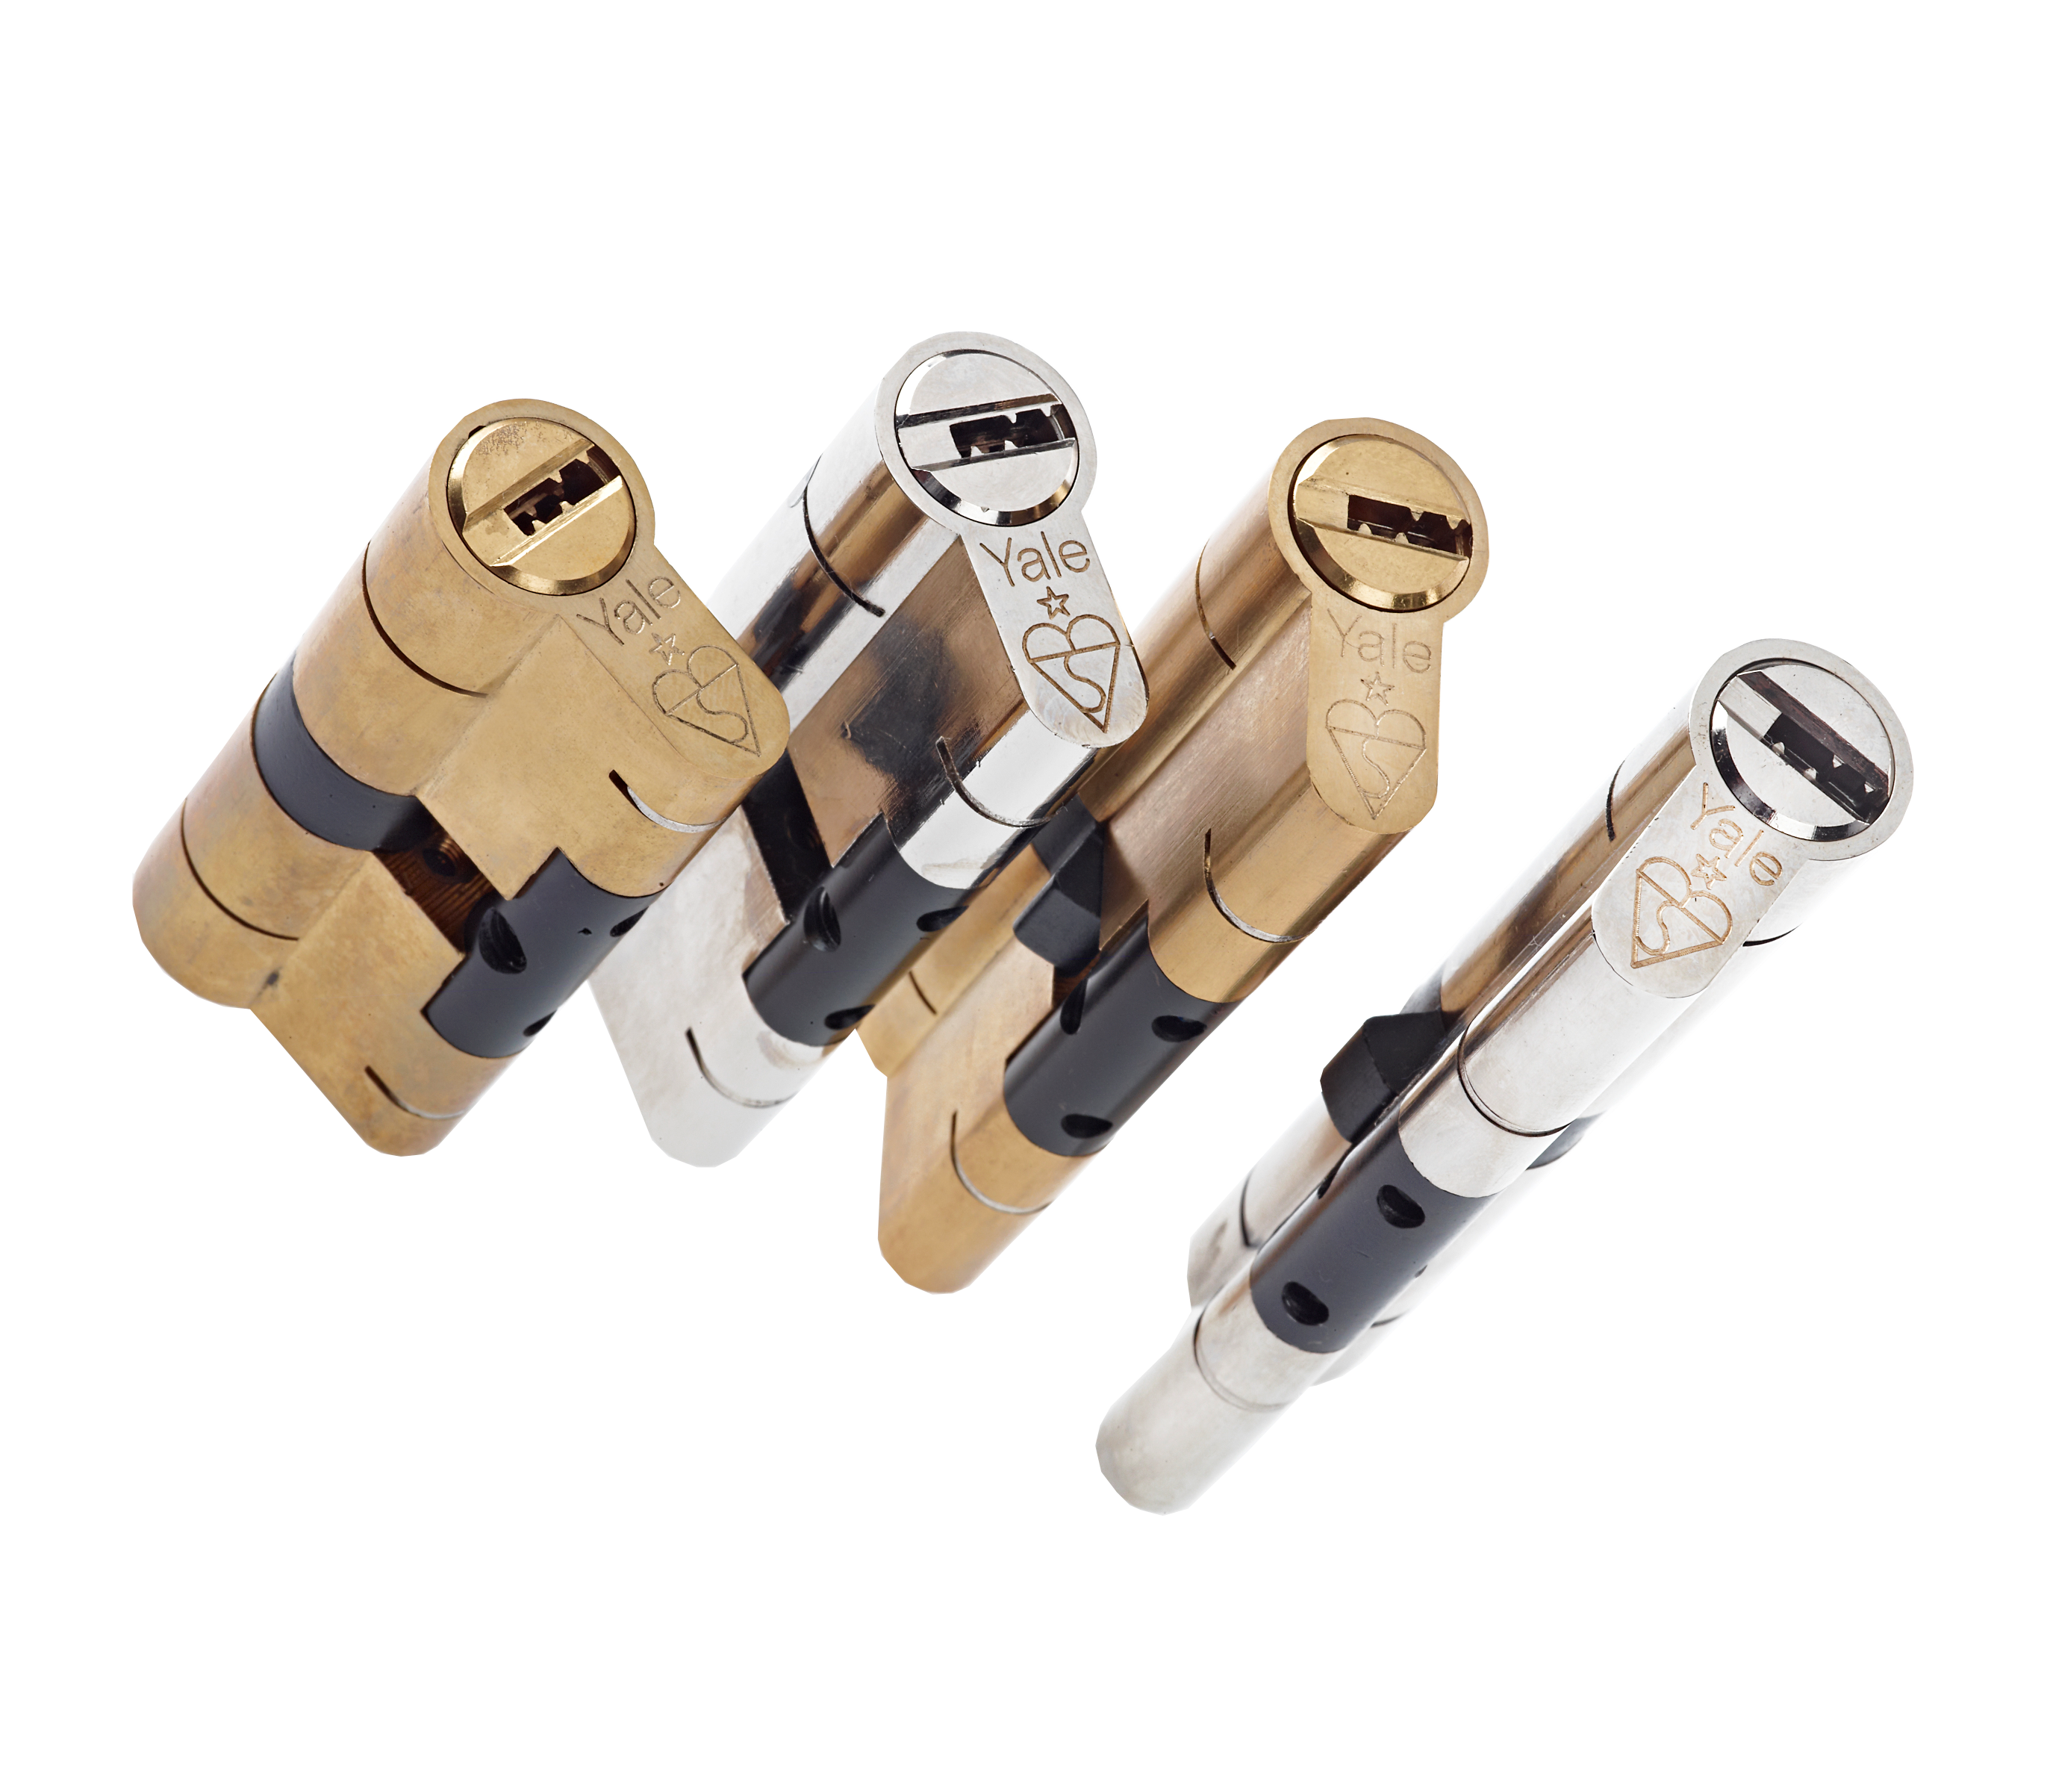 Superior 1 Star Euro Profile Cylinders